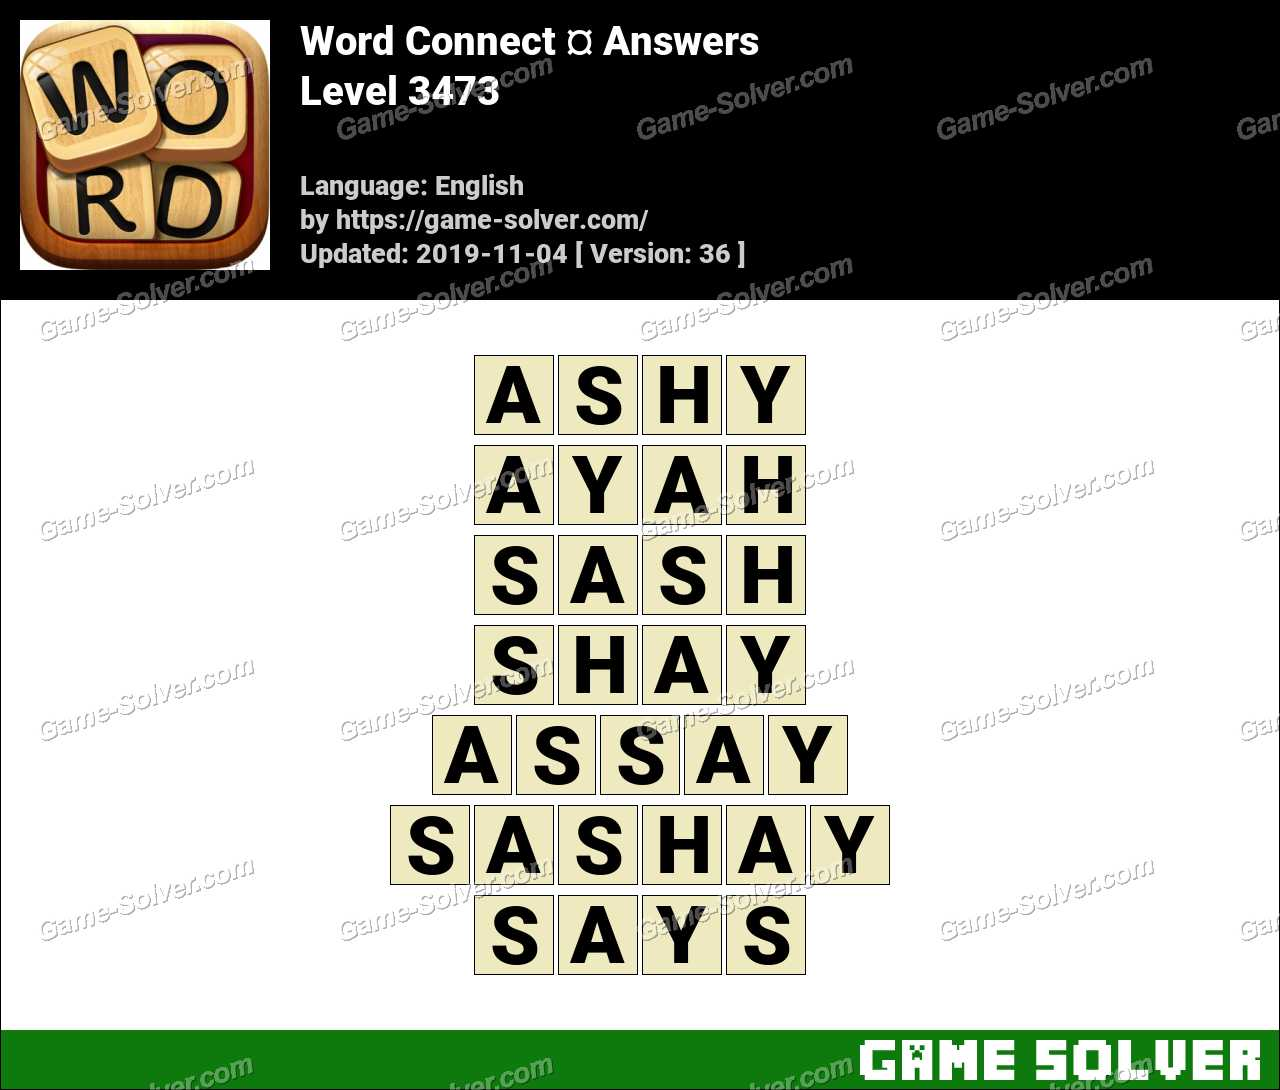 Word Connect Level 3473 Answers